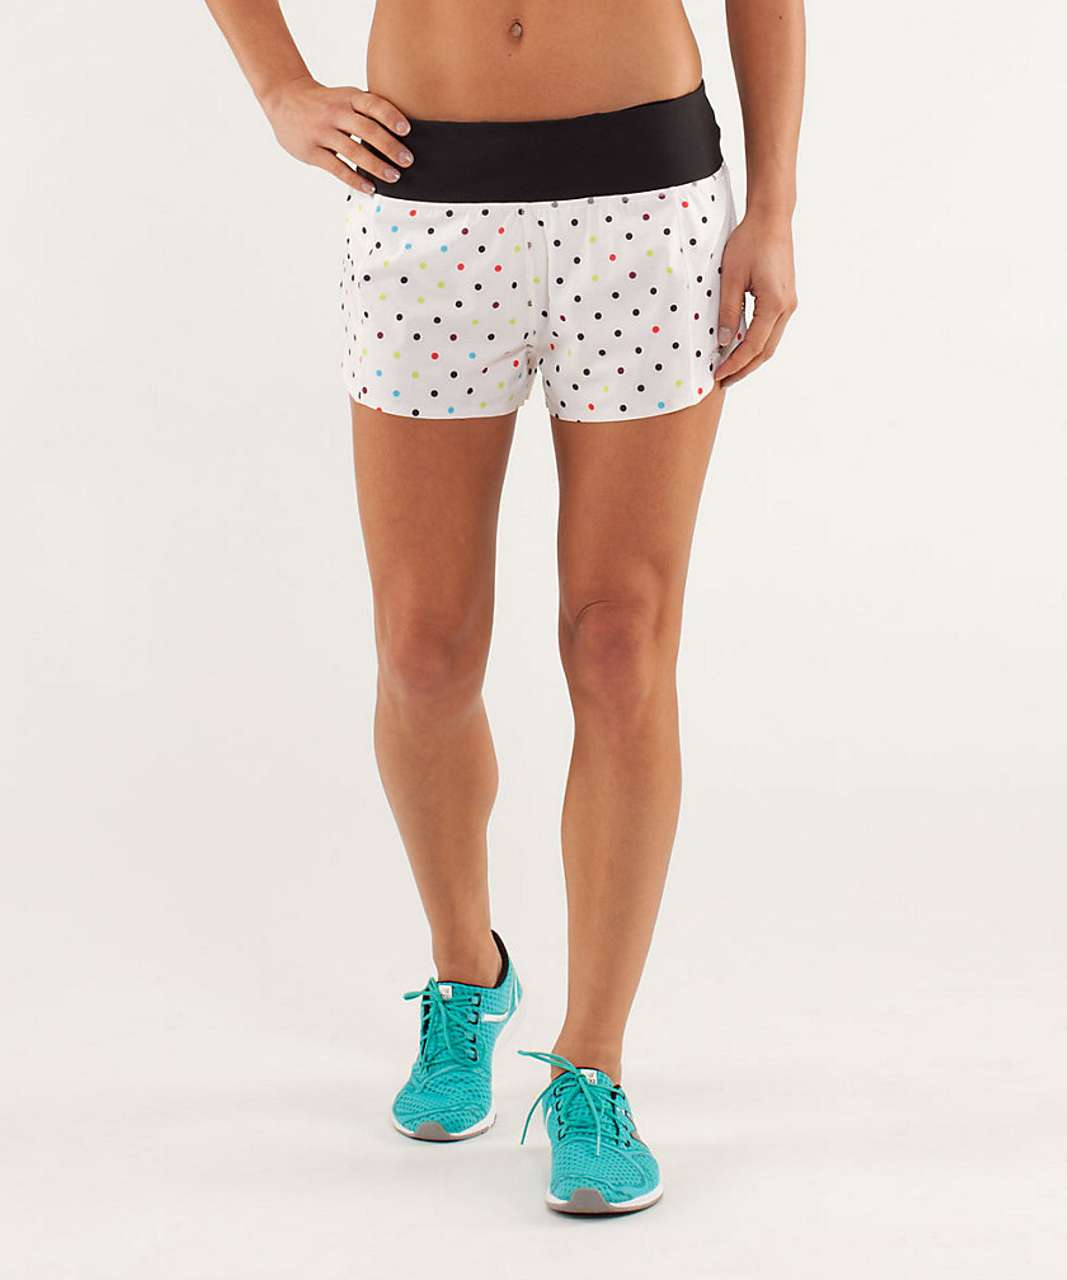 Lululemon Run: Light As Air Short - 2012 Seawheeze - Wheezy Dot Multi / Black